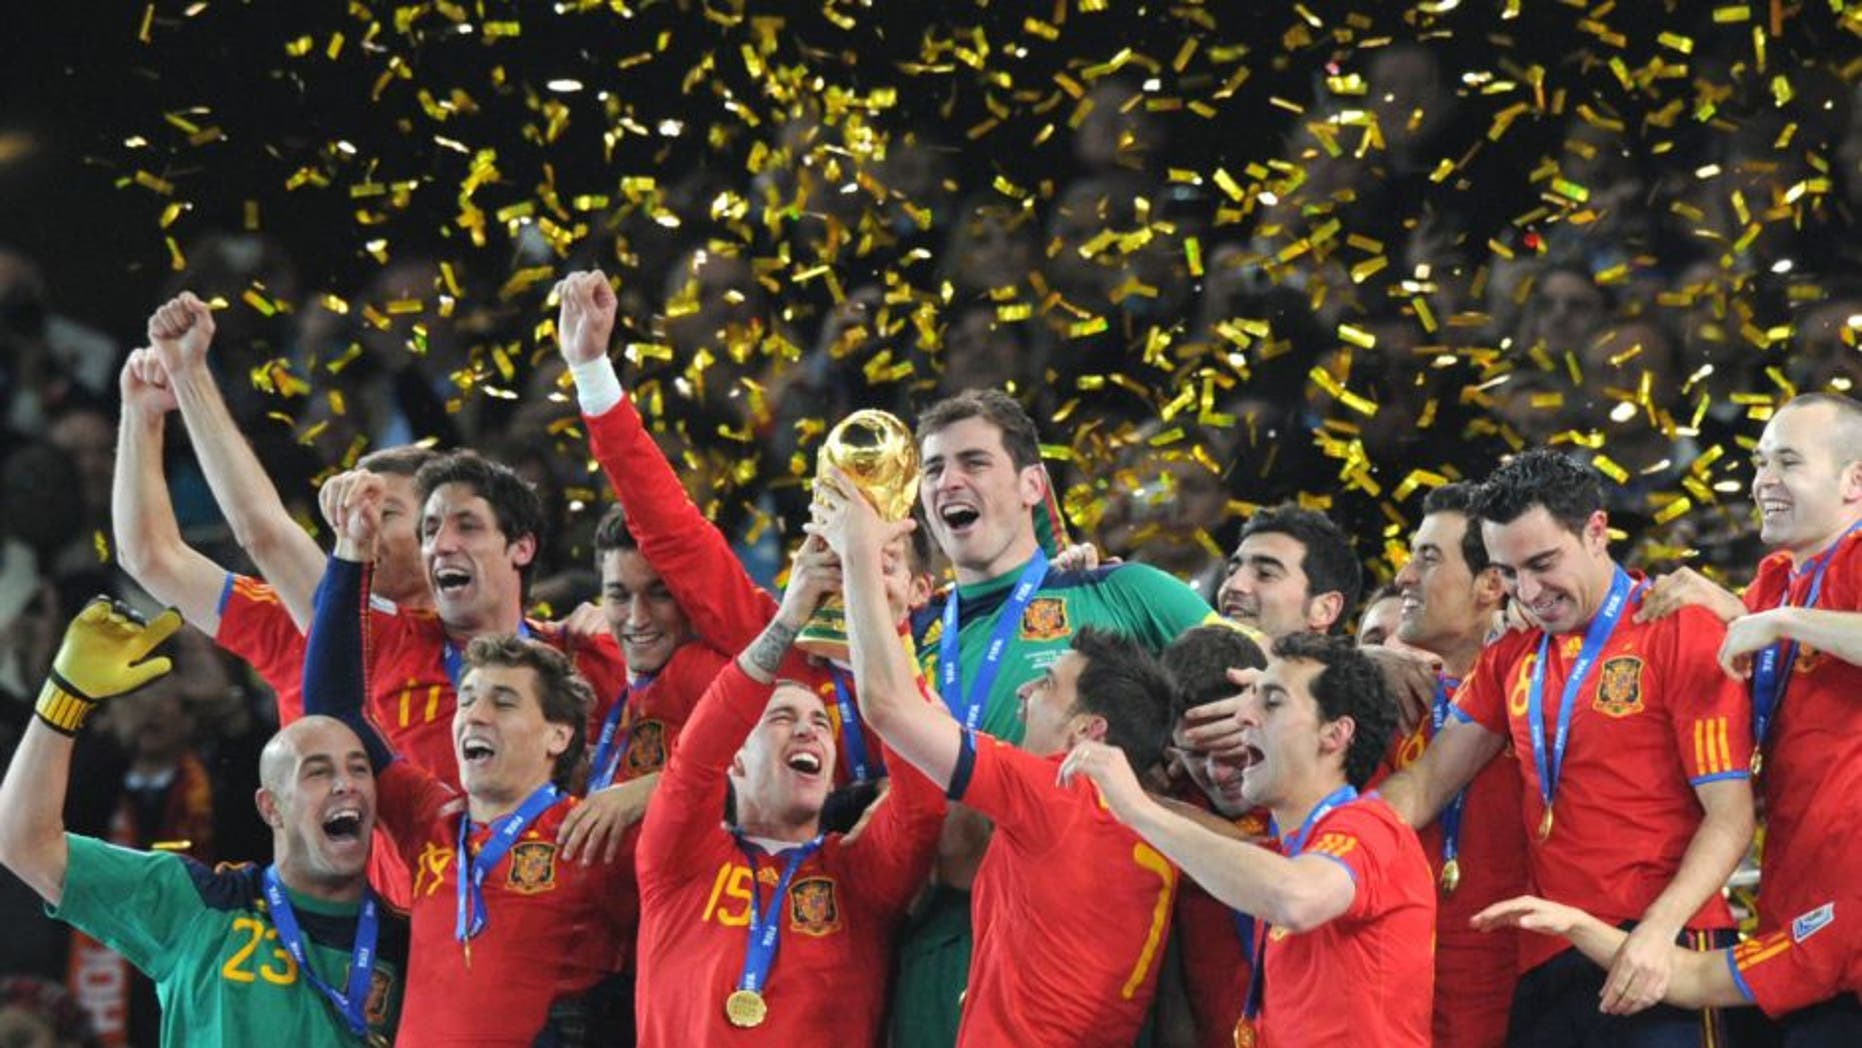 Spain's defender Sergio Ramos (C, L) and Spain's striker David Villa (C, R) hold the trophy as Spain's national football team players celebrate winning the 2010 World Cup football final Netherlands vs. Spain on July 11, 2010 at Soccer City stadium in Soweto, suburban Johannesburg. NO PUSH TO MOBILE / MOBILE USE SOLELY WITHIN EDITORIAL ARTICLE - AFP PHOTO / PEDRO UGARTE (Photo credit should read PEDRO UGARTE/AFP/Getty Images)